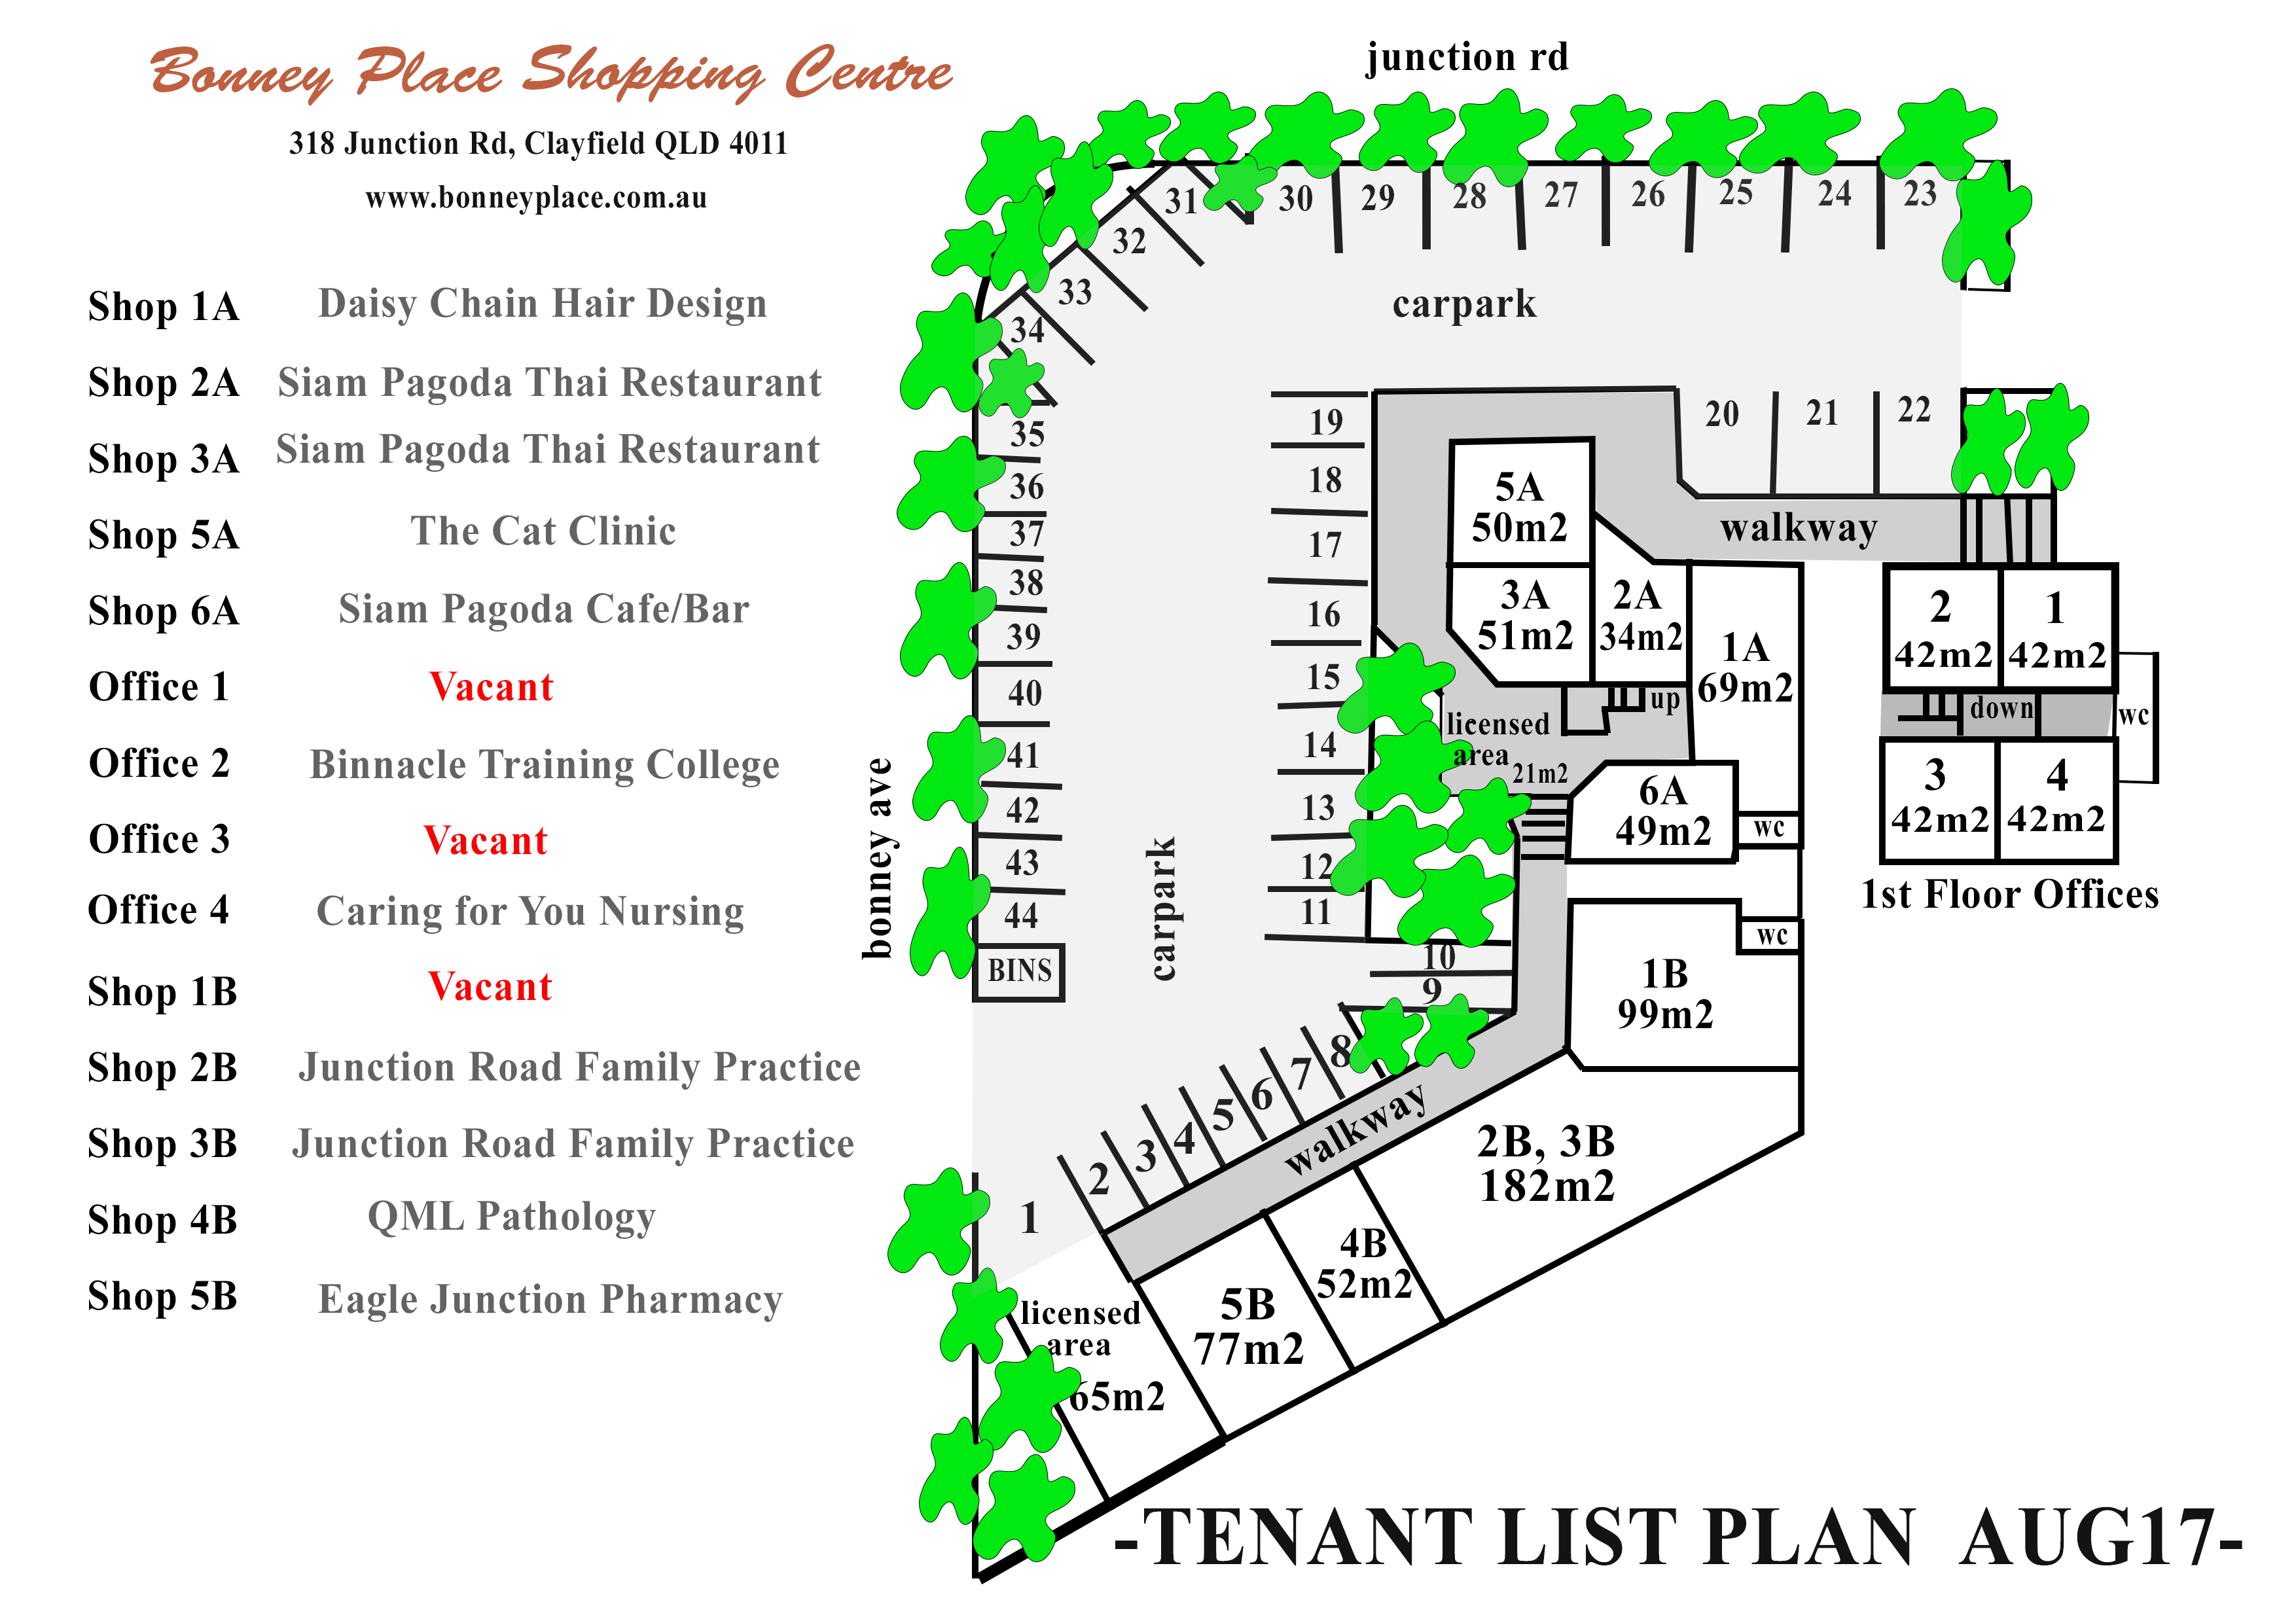 clayfield-tenant-plan-aug17